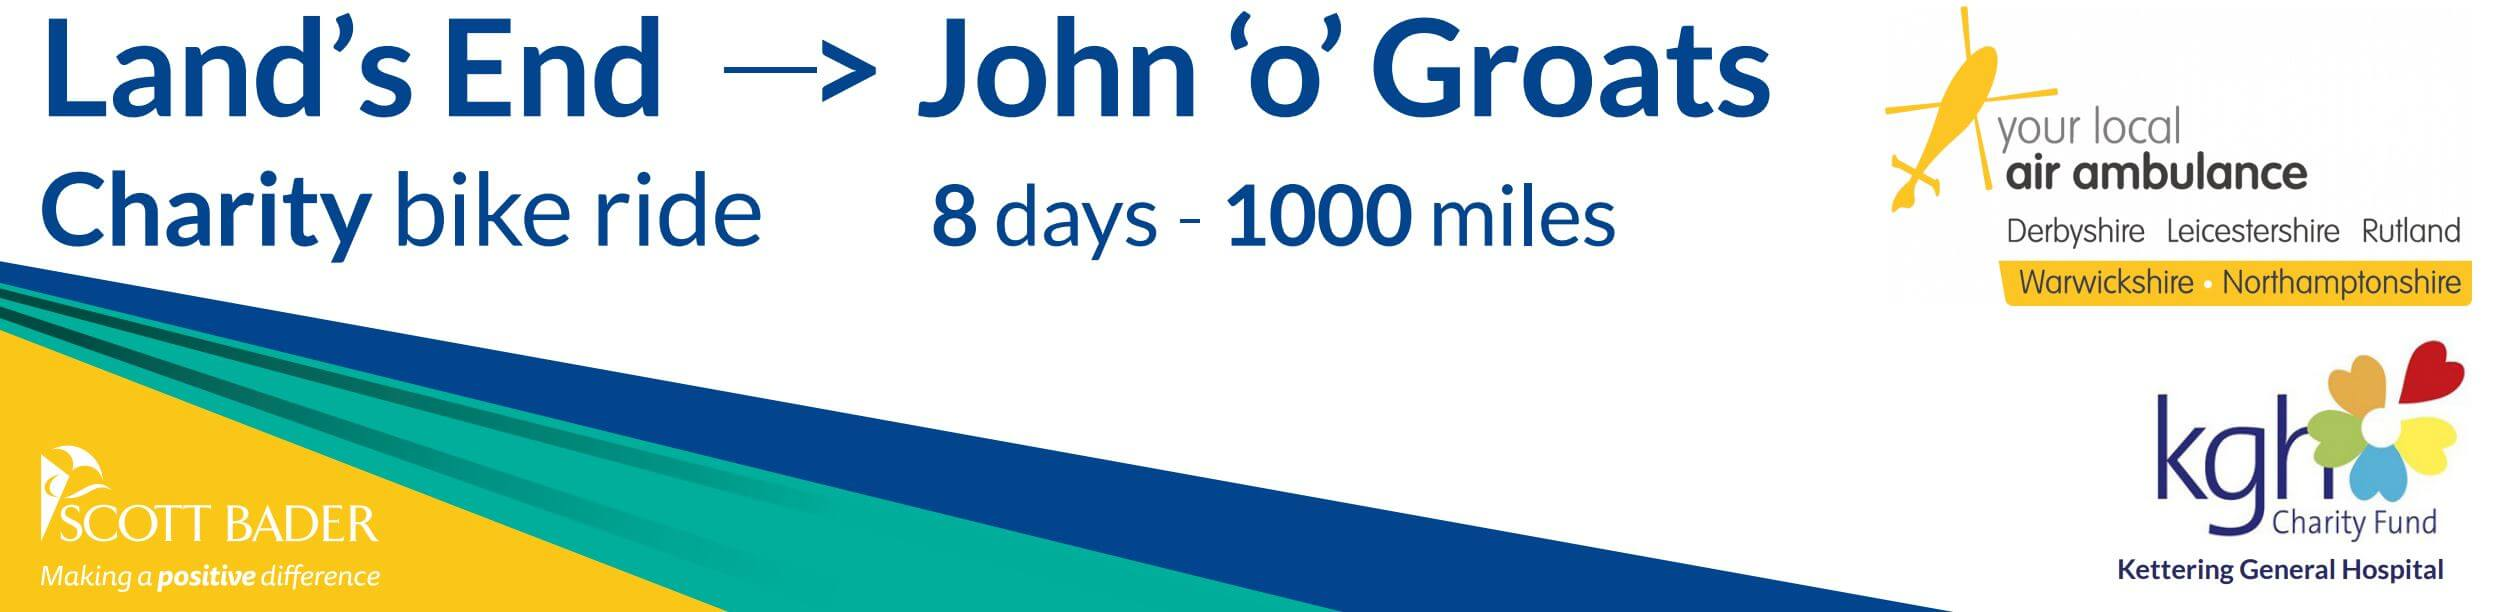 Scott Bader UK team cycling from Land's End to John O Groats for Charity